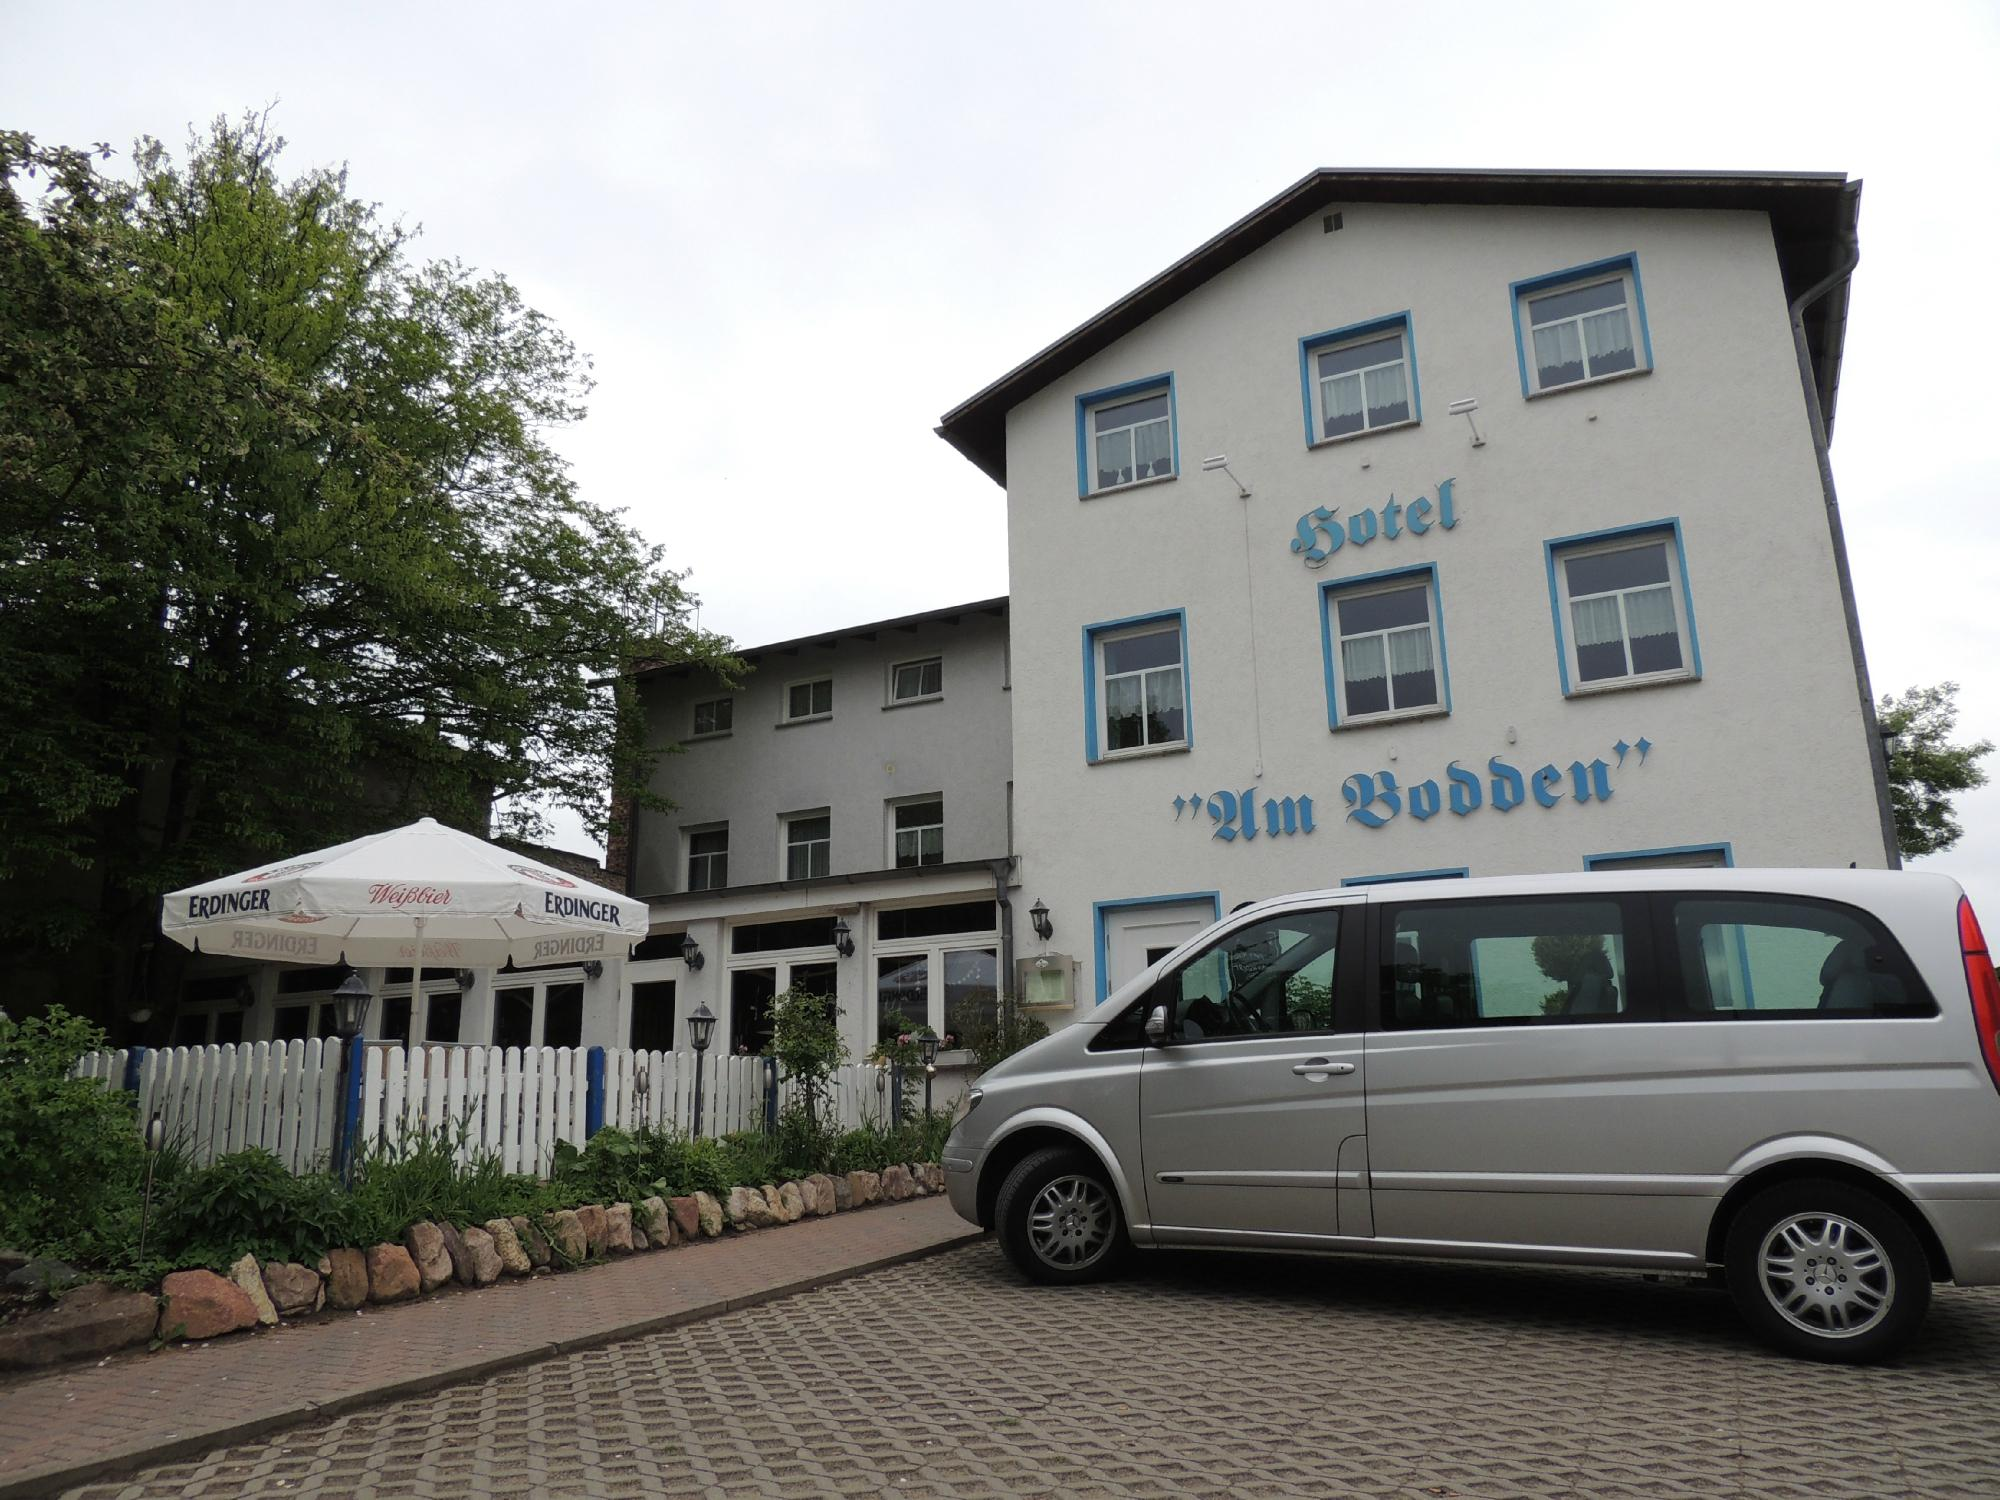 Hotel & Restaurant Am Bodden